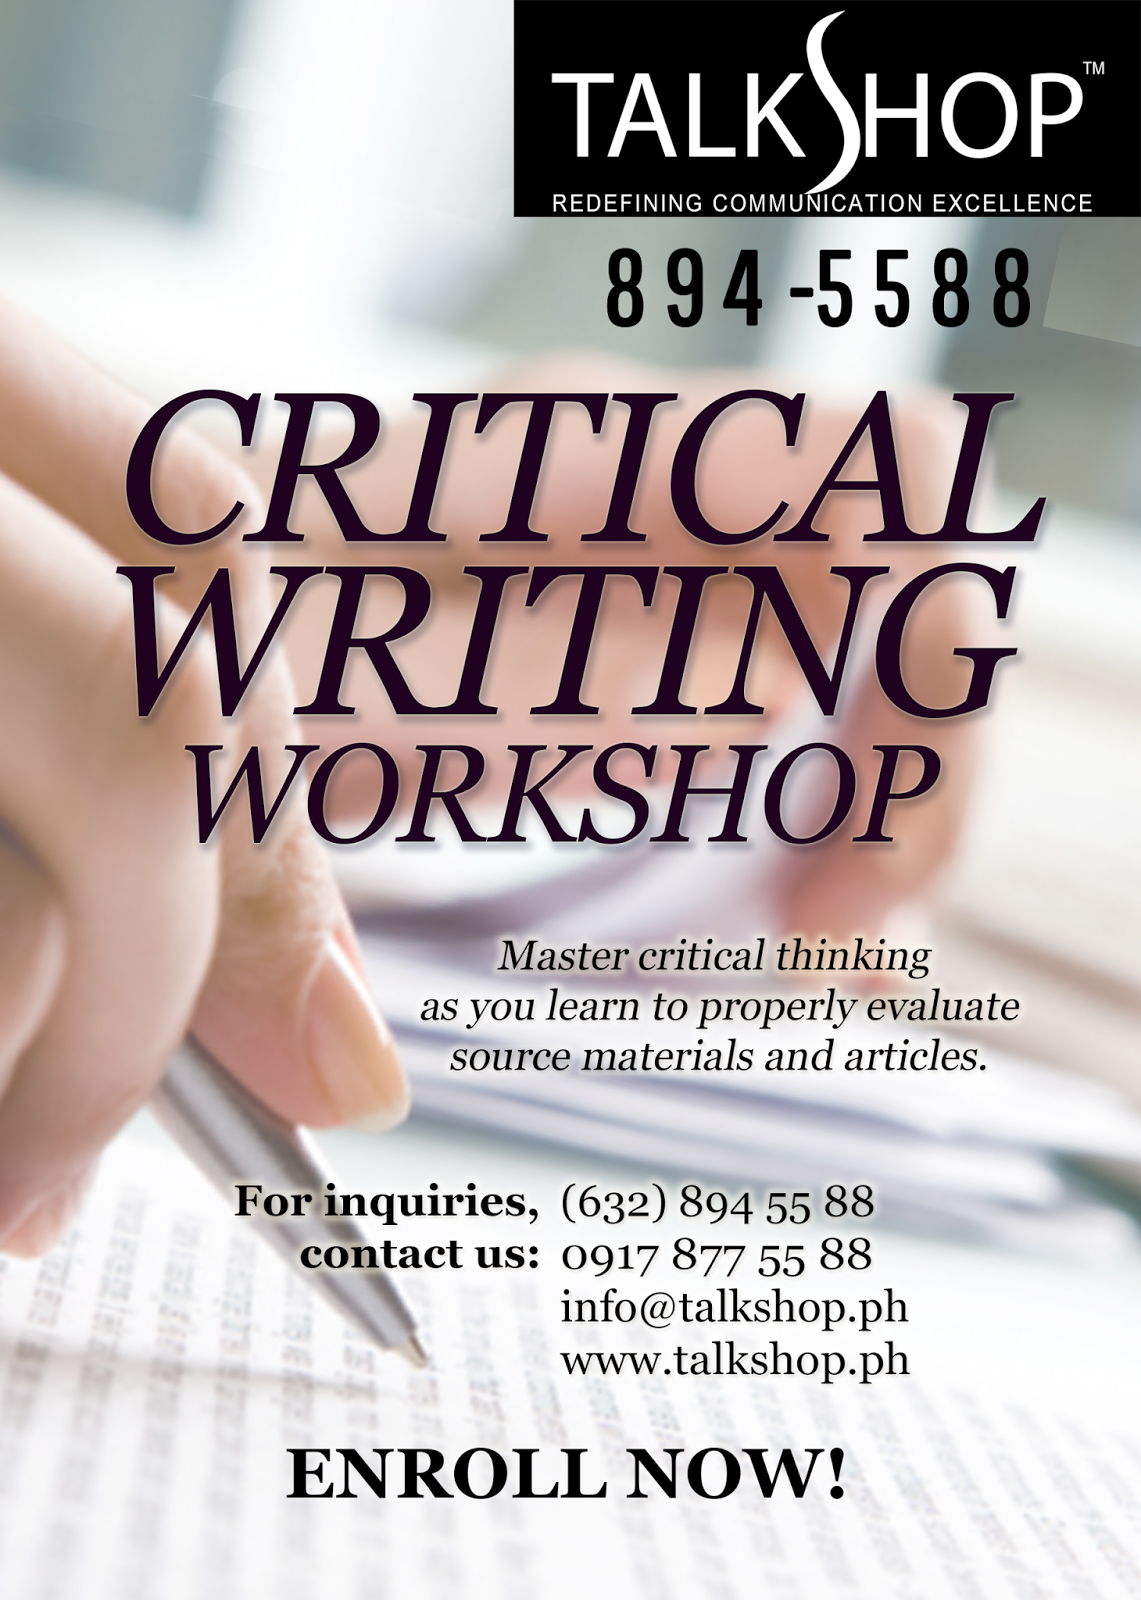 TalkShop Critical Writing Workshop